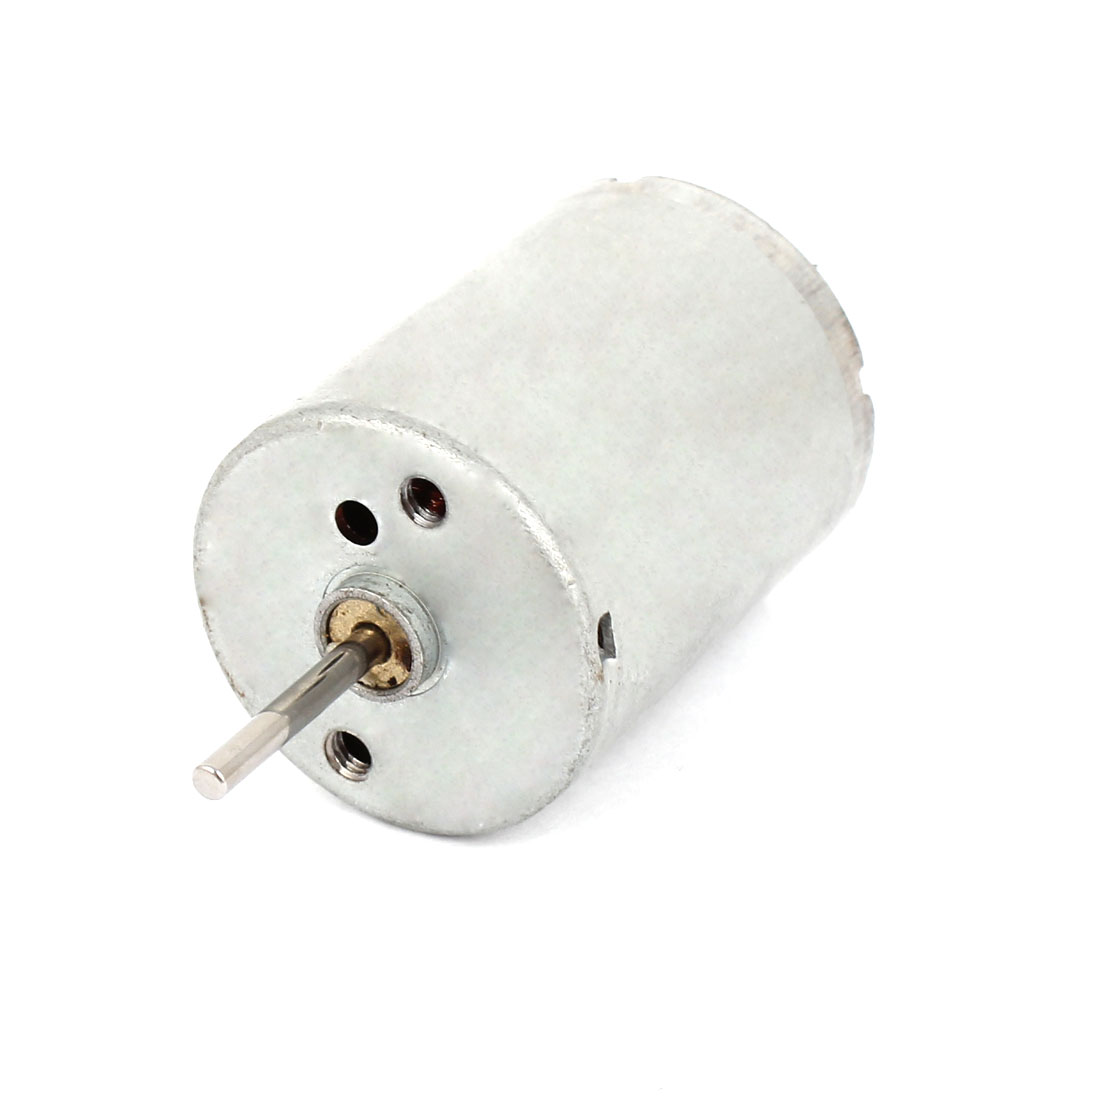 6-9V 4300RPM Gear Box DC Reducer Motor for Robot